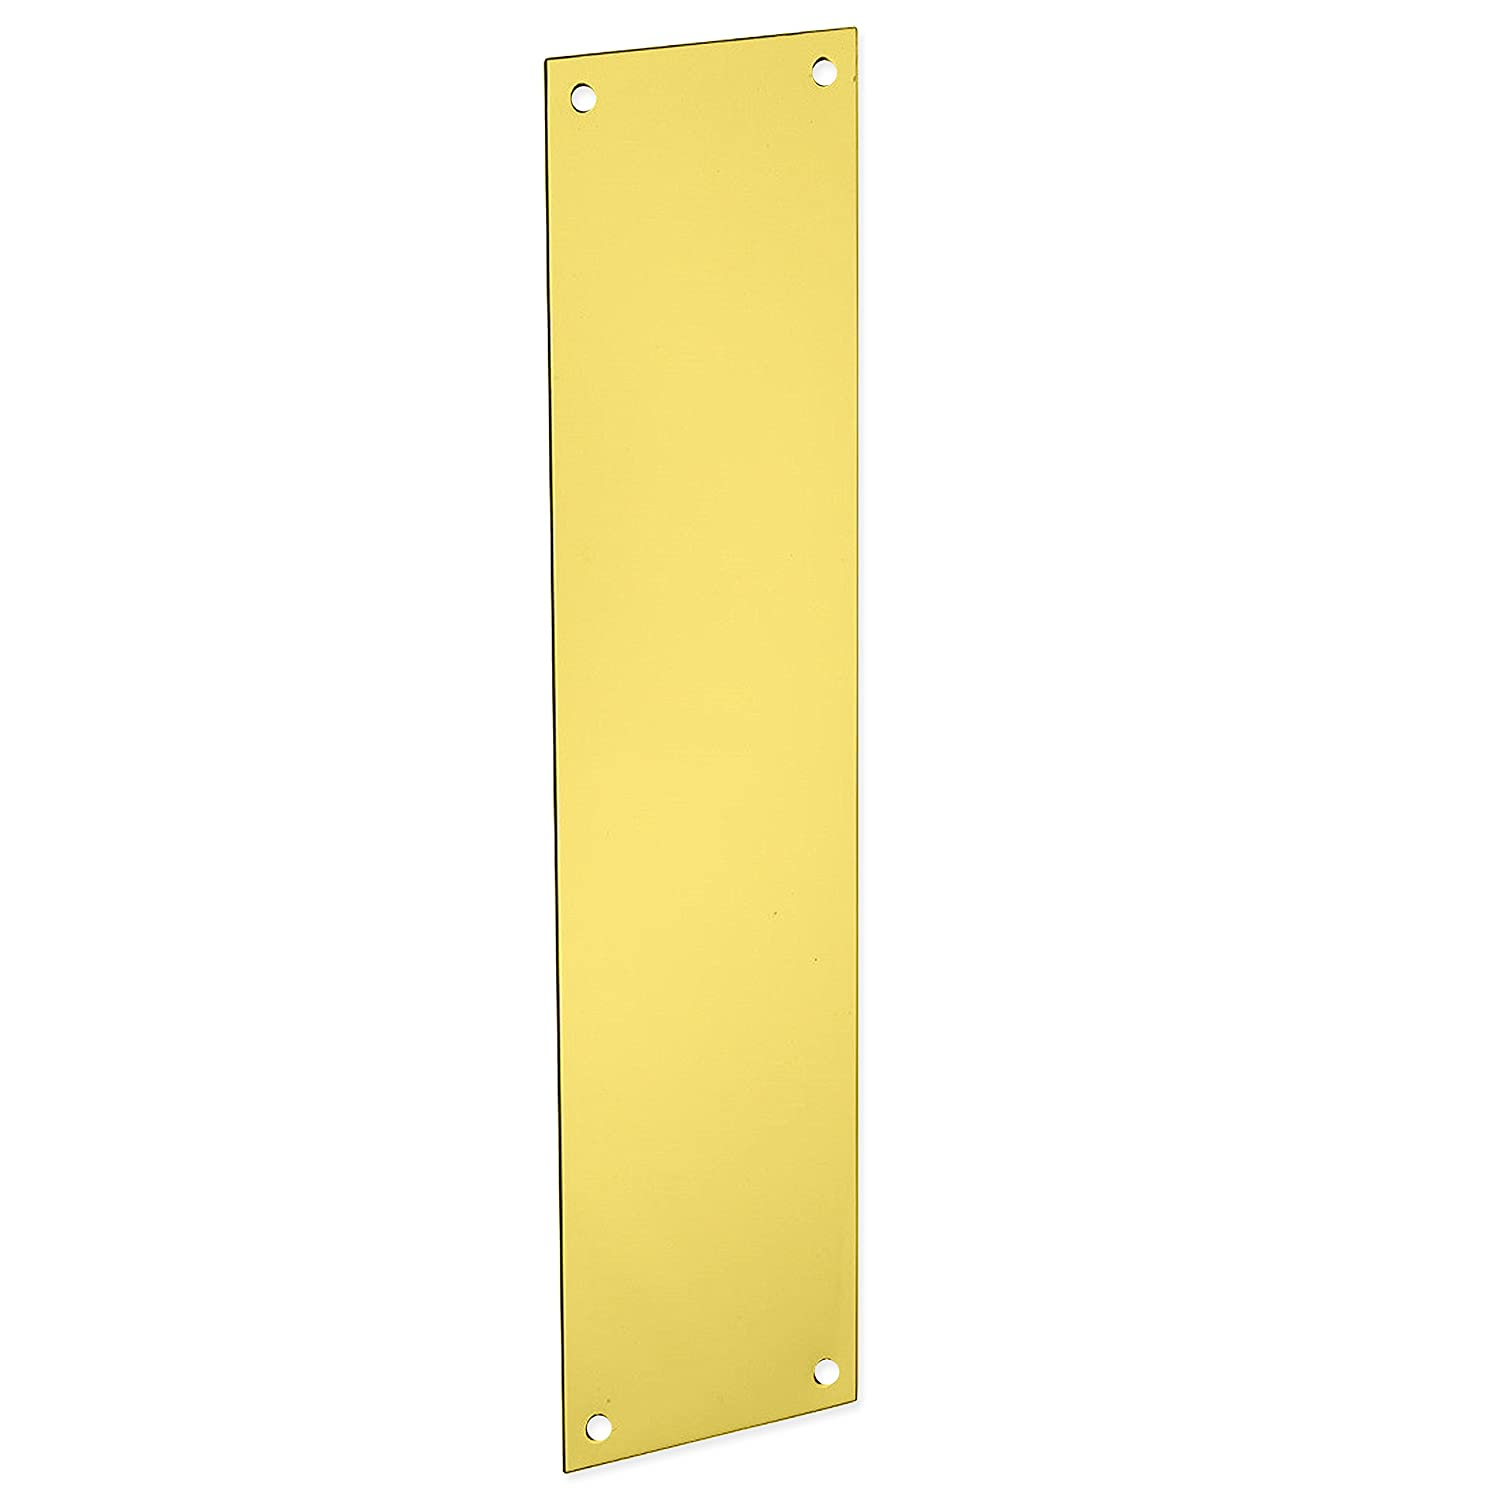 300mm Large Solid Brass Finger Plate - Prevents Fingers From Smudging The Door White Hinge